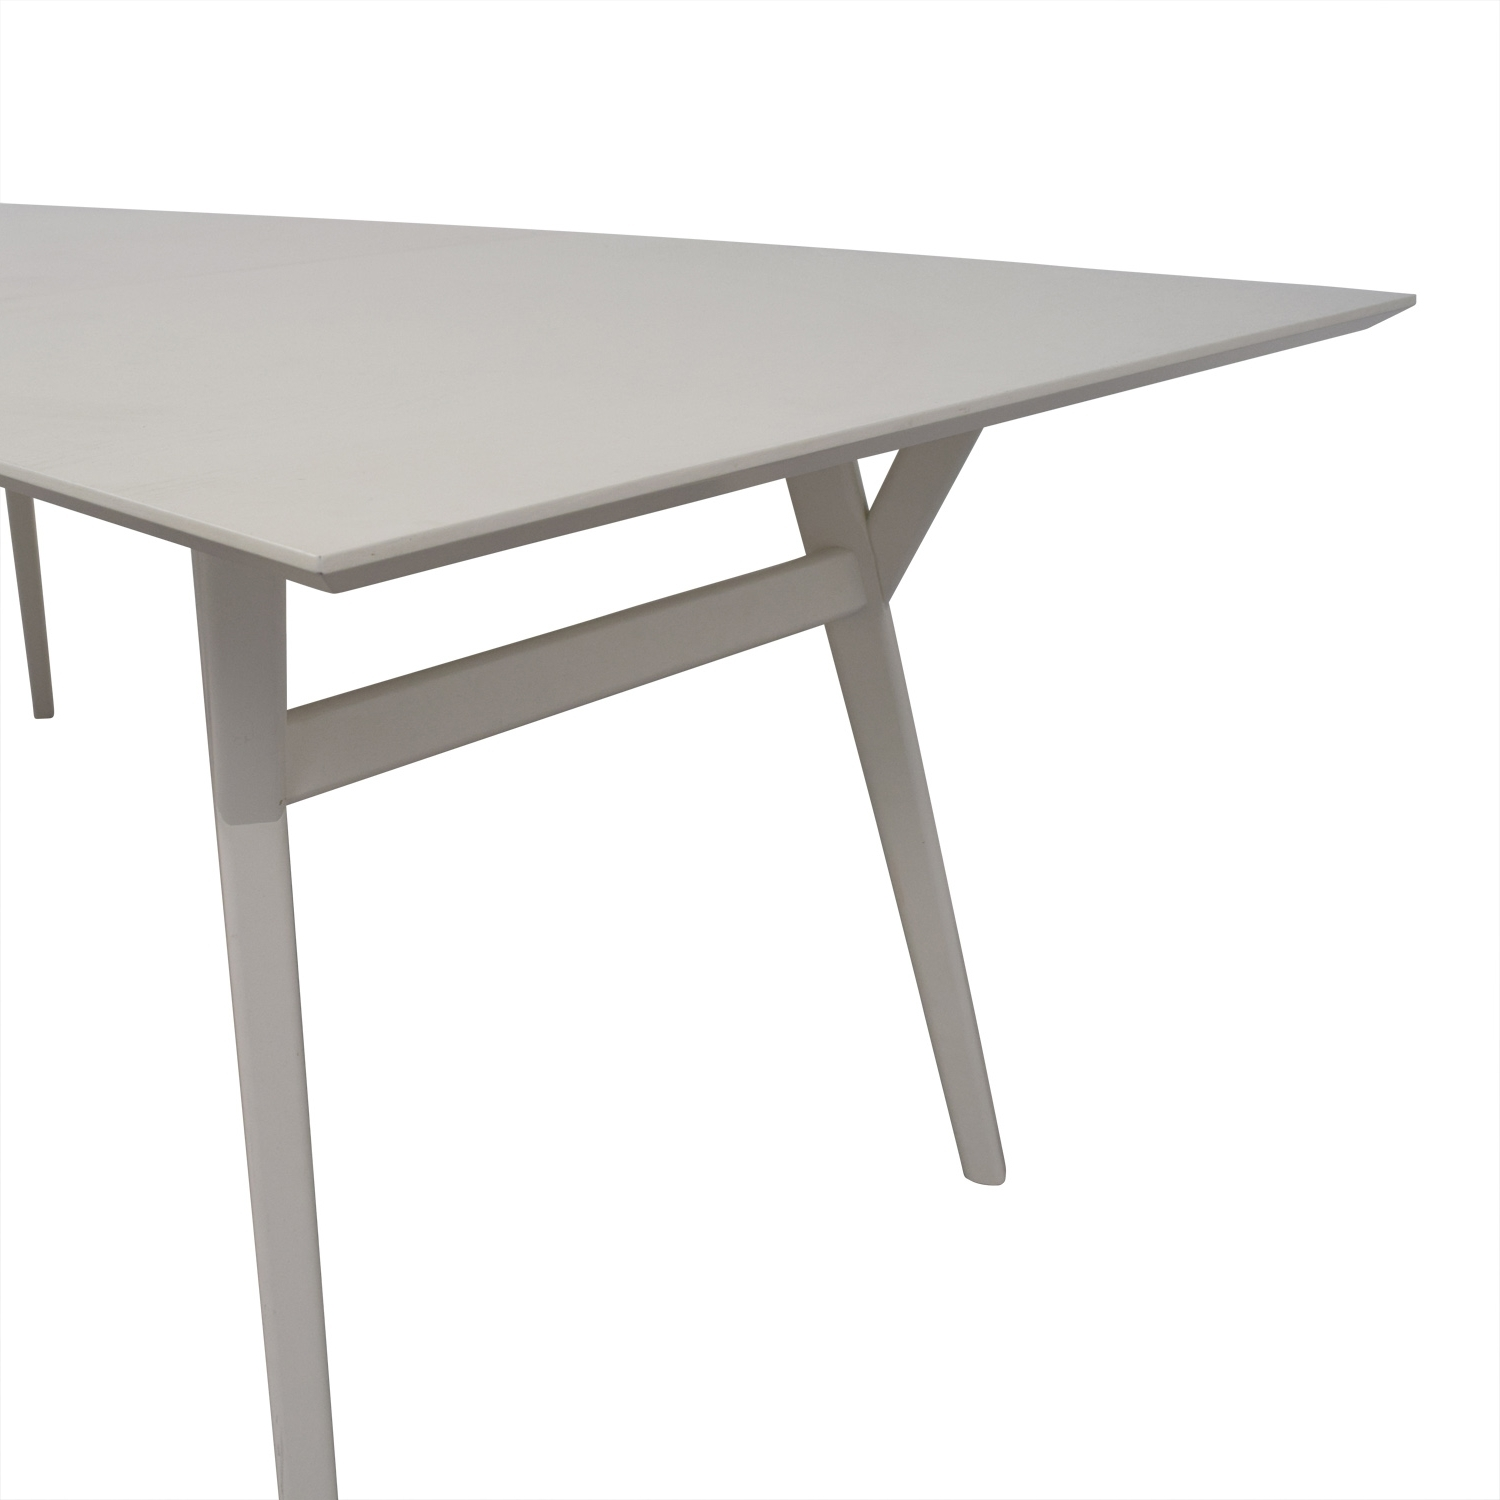 [%61% Off – West Elm West Elm Mid Century White Expandable Dining With Regard To Most Recent White Square Extending Dining Tables|White Square Extending Dining Tables Regarding Current 61% Off – West Elm West Elm Mid Century White Expandable Dining|Best And Newest White Square Extending Dining Tables Intended For 61% Off – West Elm West Elm Mid Century White Expandable Dining|Newest 61% Off – West Elm West Elm Mid Century White Expandable Dining Pertaining To White Square Extending Dining Tables%] (View 14 of 25)